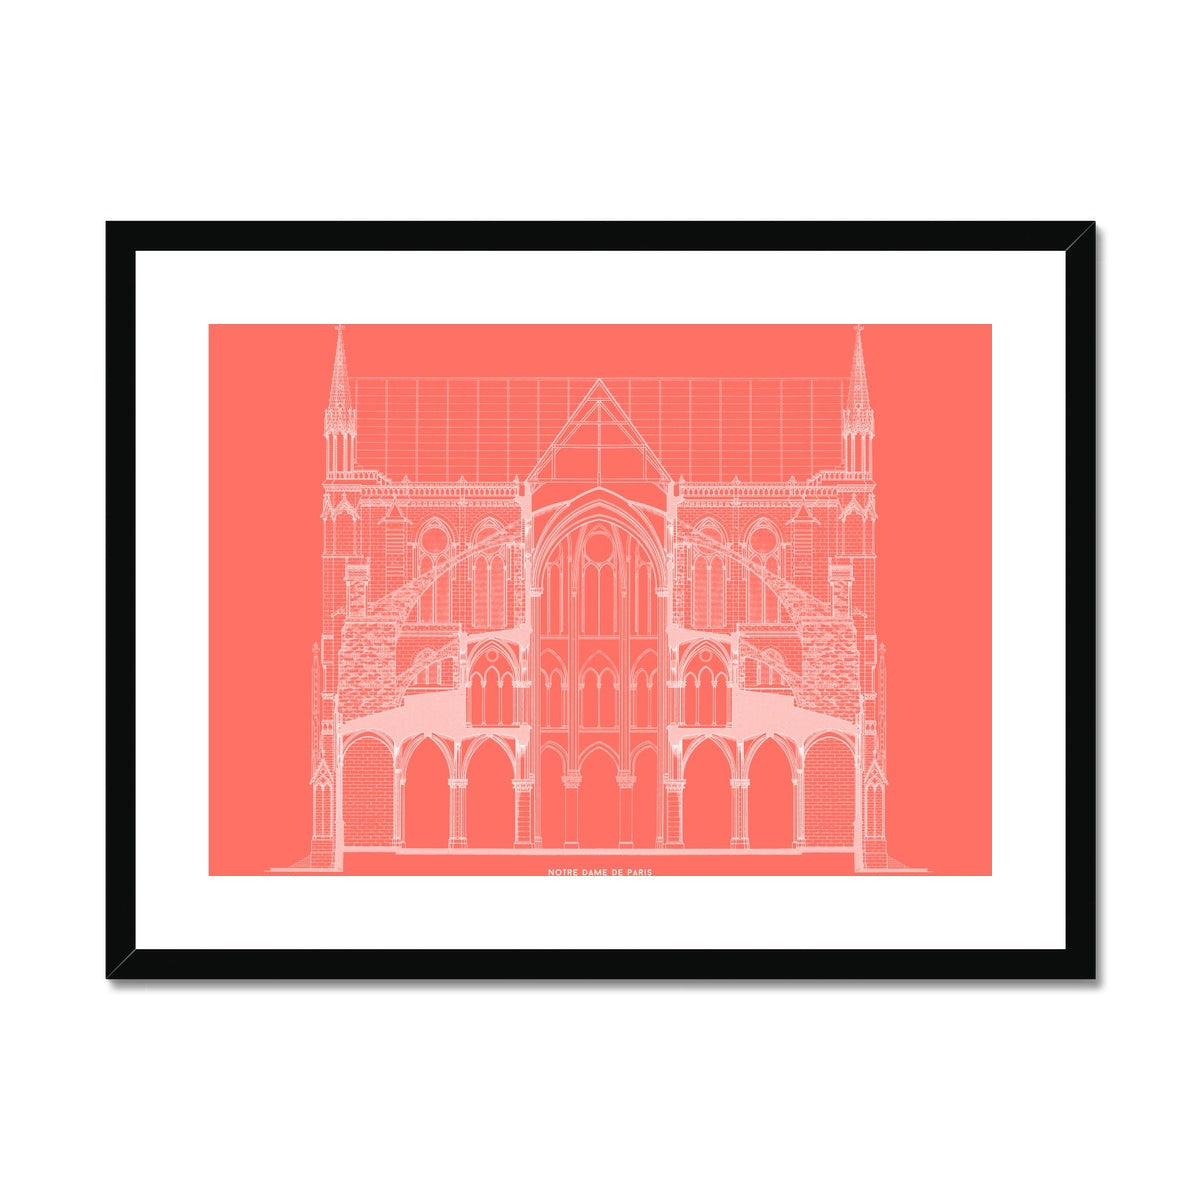 Notre Dame de Paris - Full Cross Section - Red -  Framed & Mounted Print